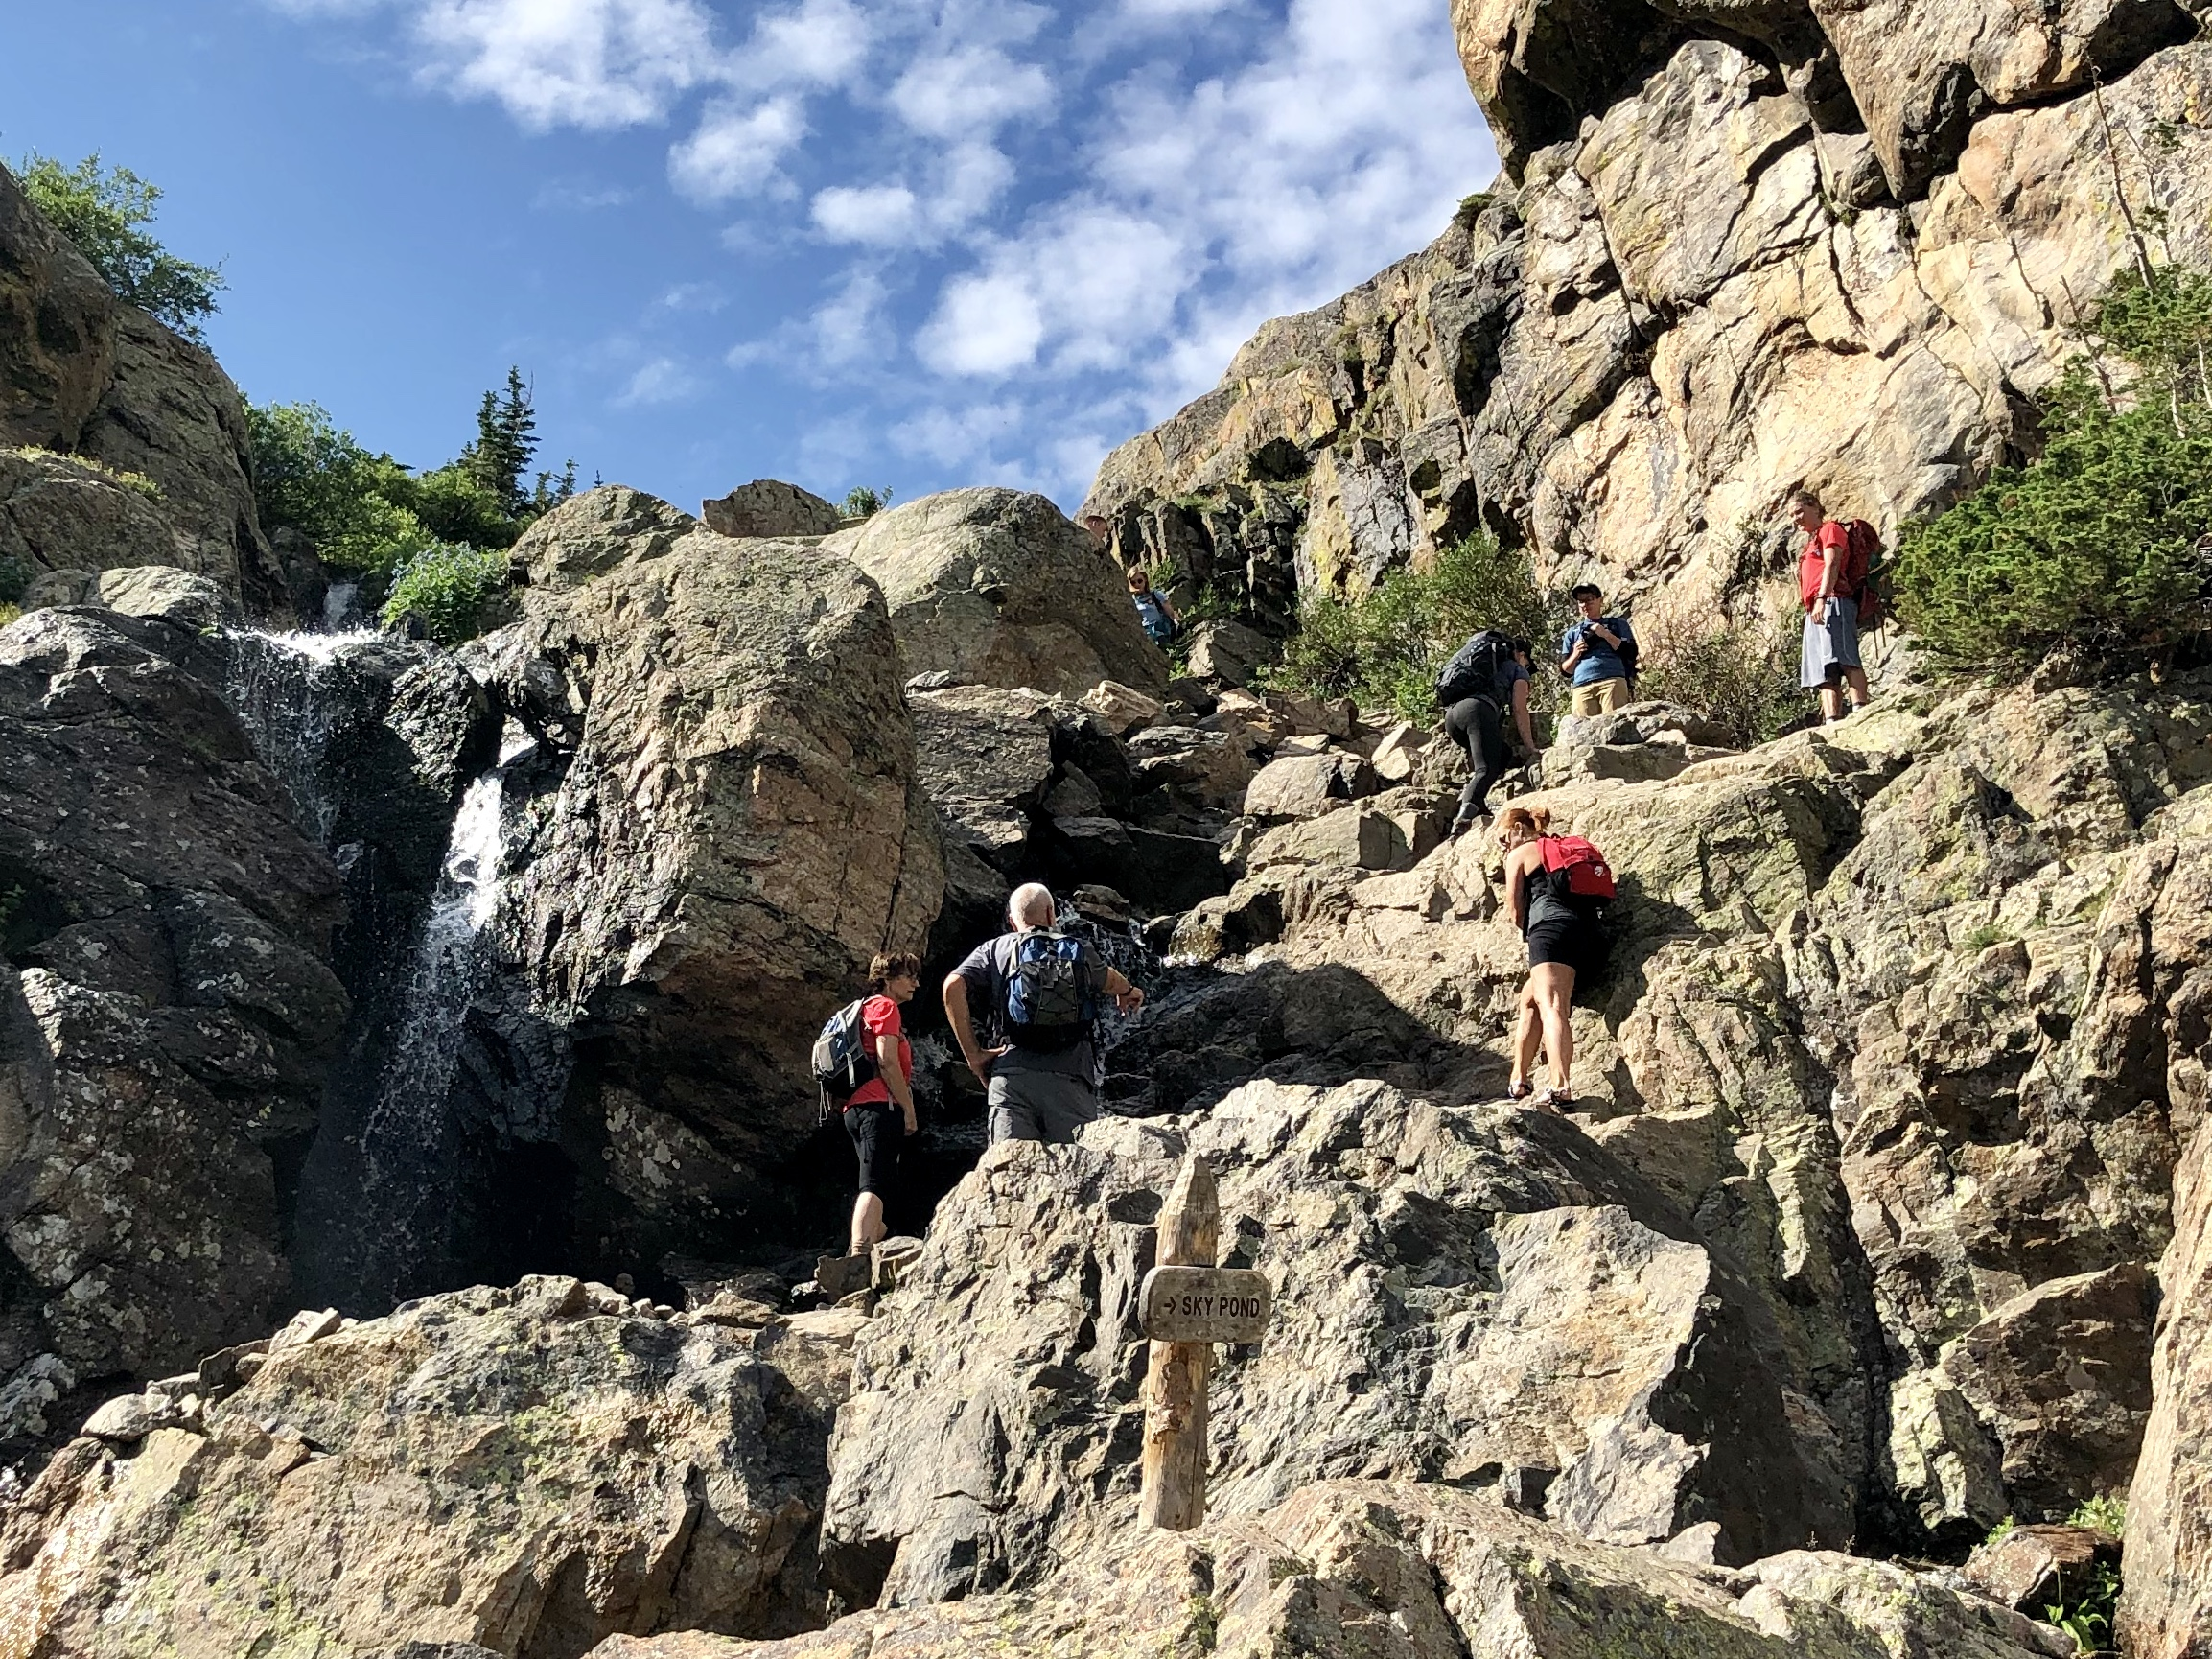 Scrambling up the waterfall to get to Sky Pond